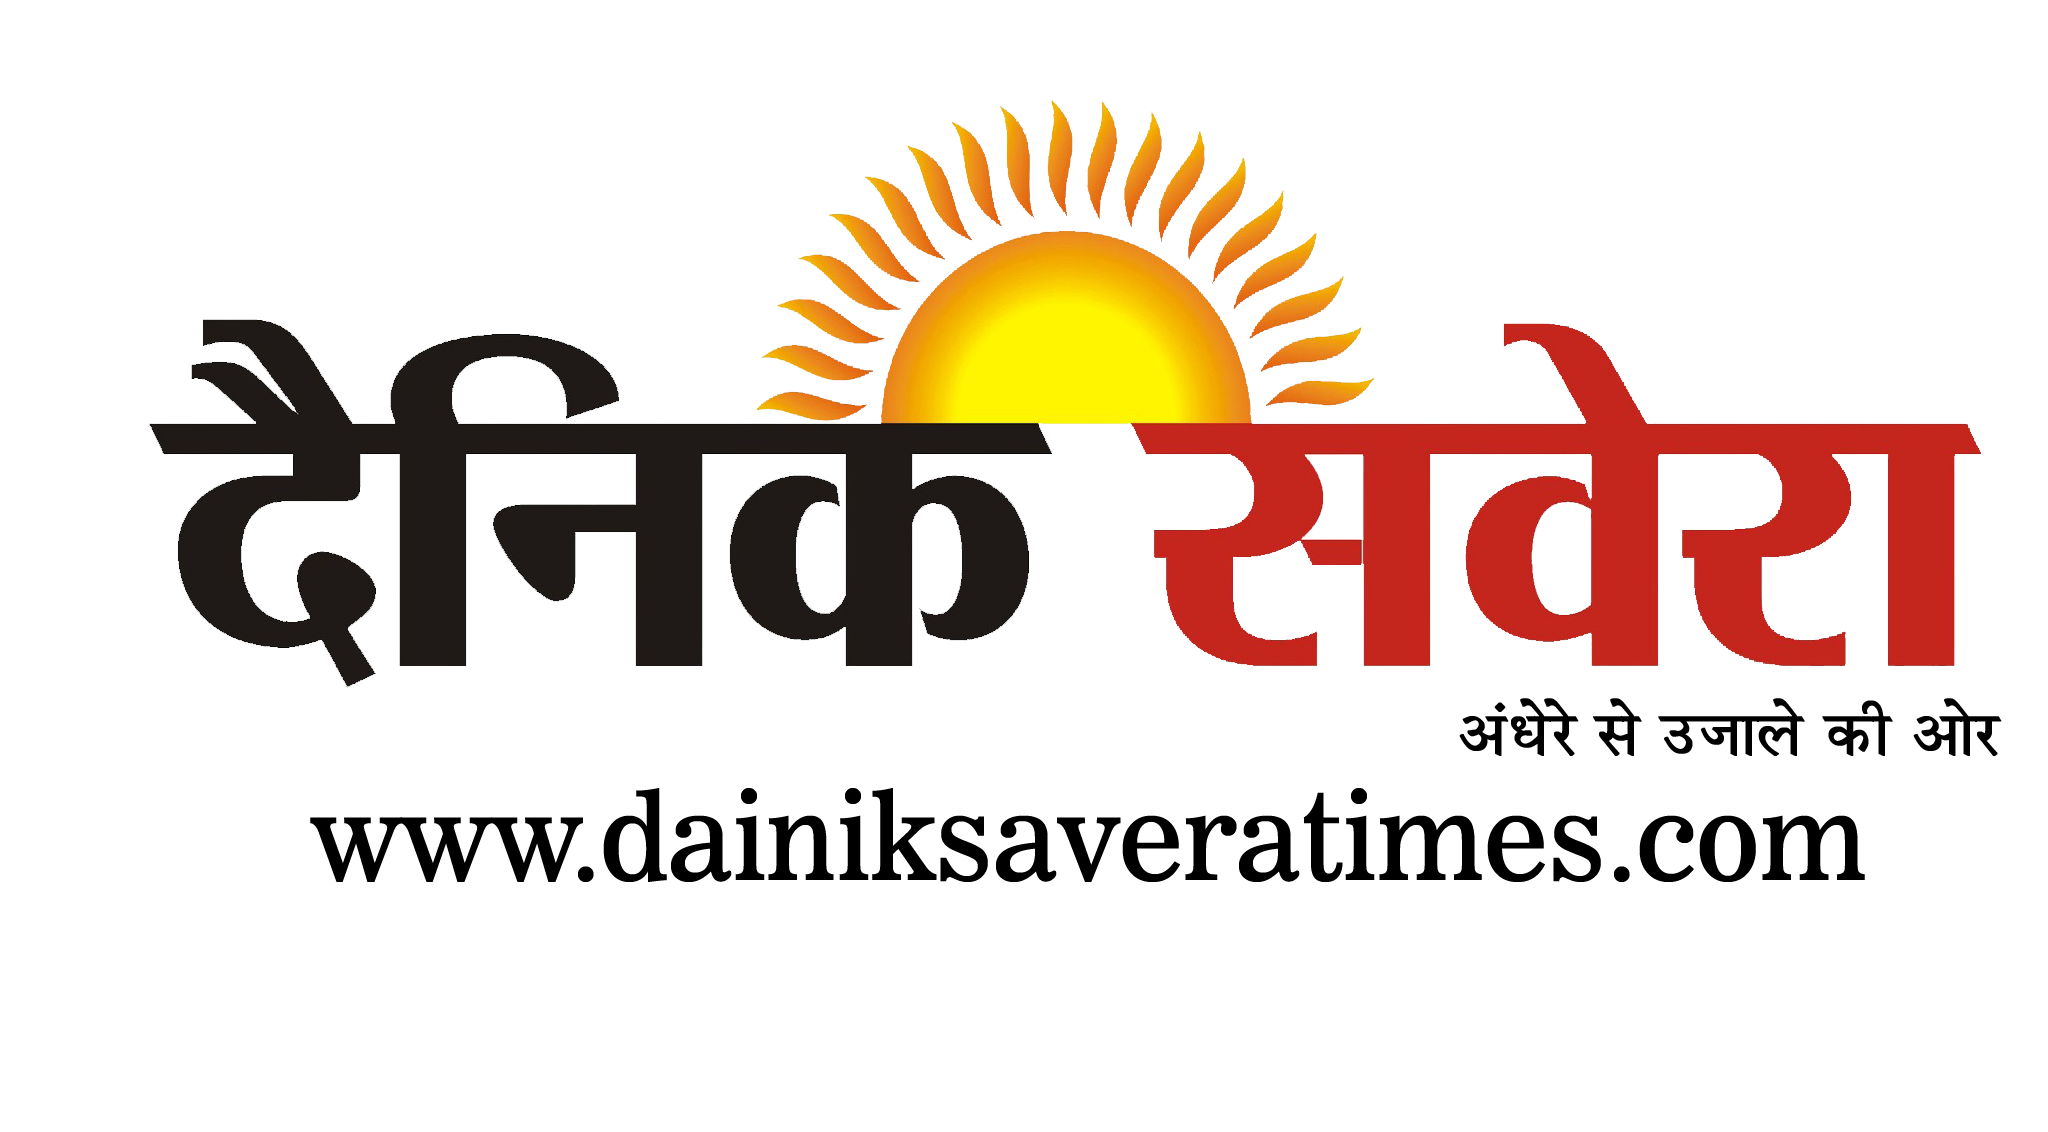 Dainik Swera - Farm2Energy